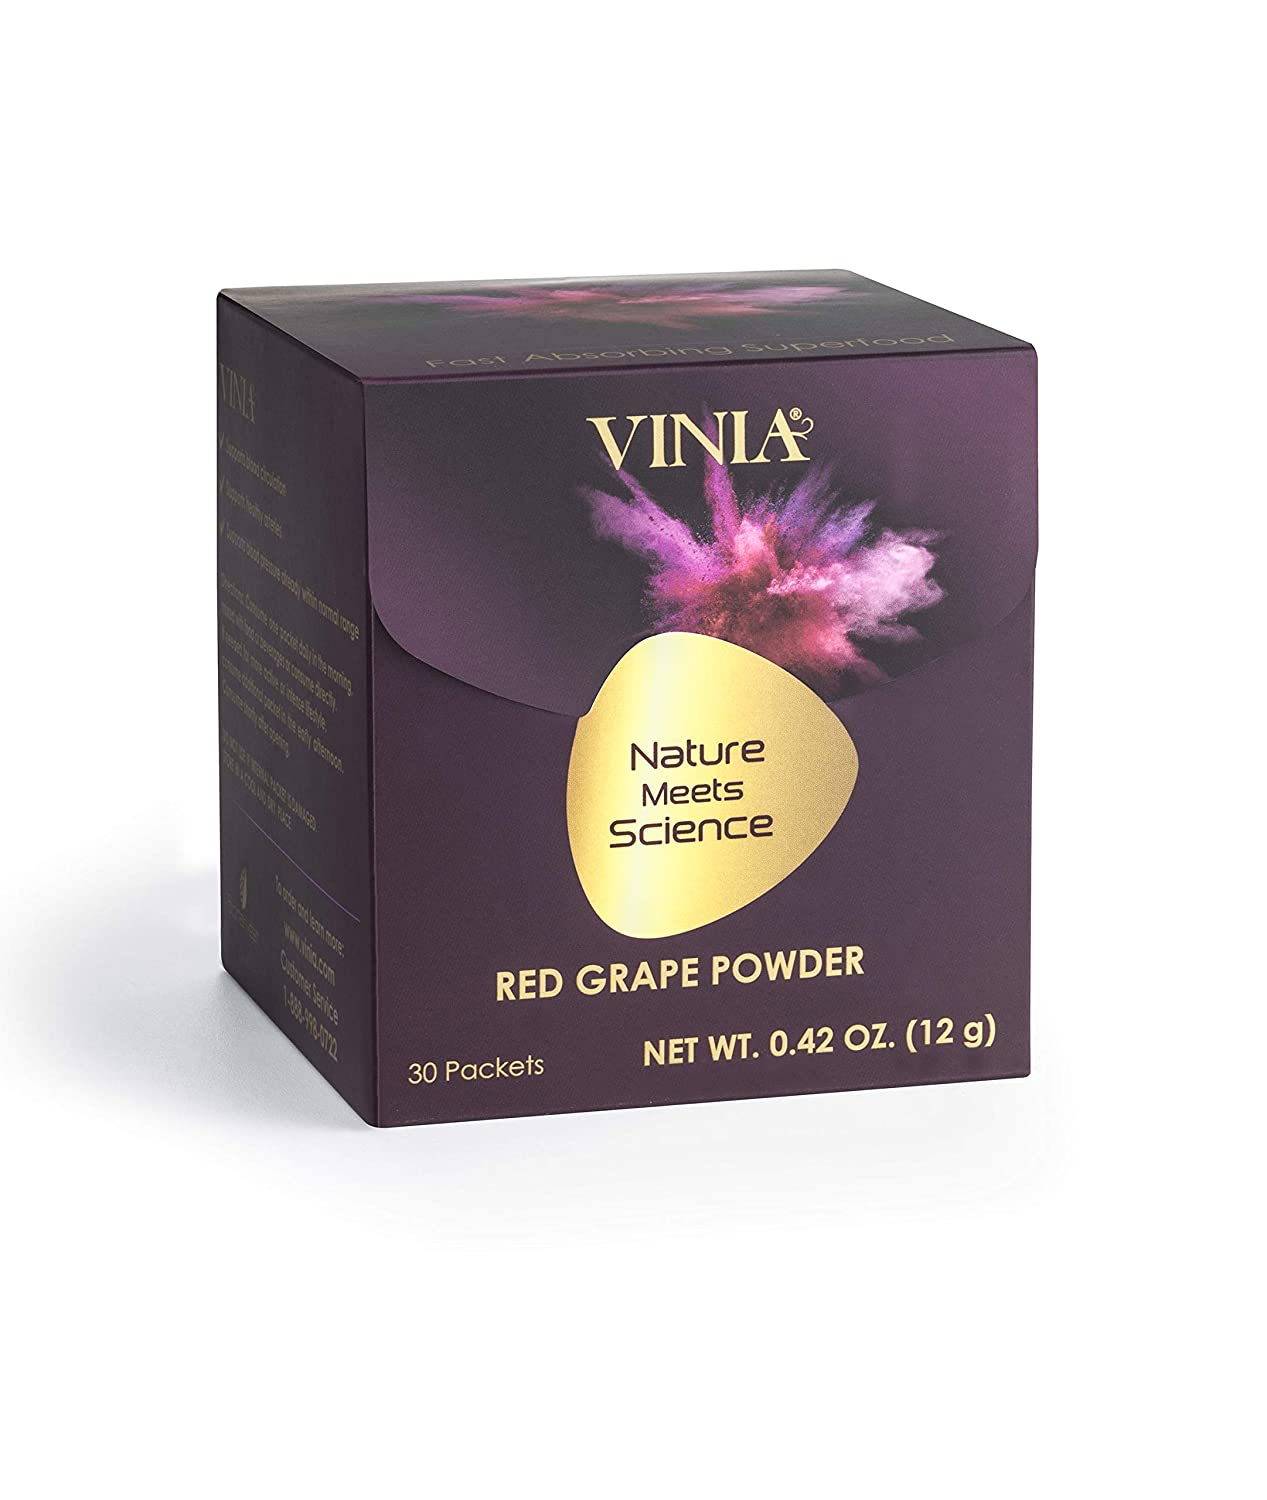 Red Grape Powder by Vinia Natural Heart Health Reservatrol Supplement, Helps Maintain Support Blood Pressure Already Within Normal Range, Antioxidant, Alcohol-Free Improves Blood Circulation